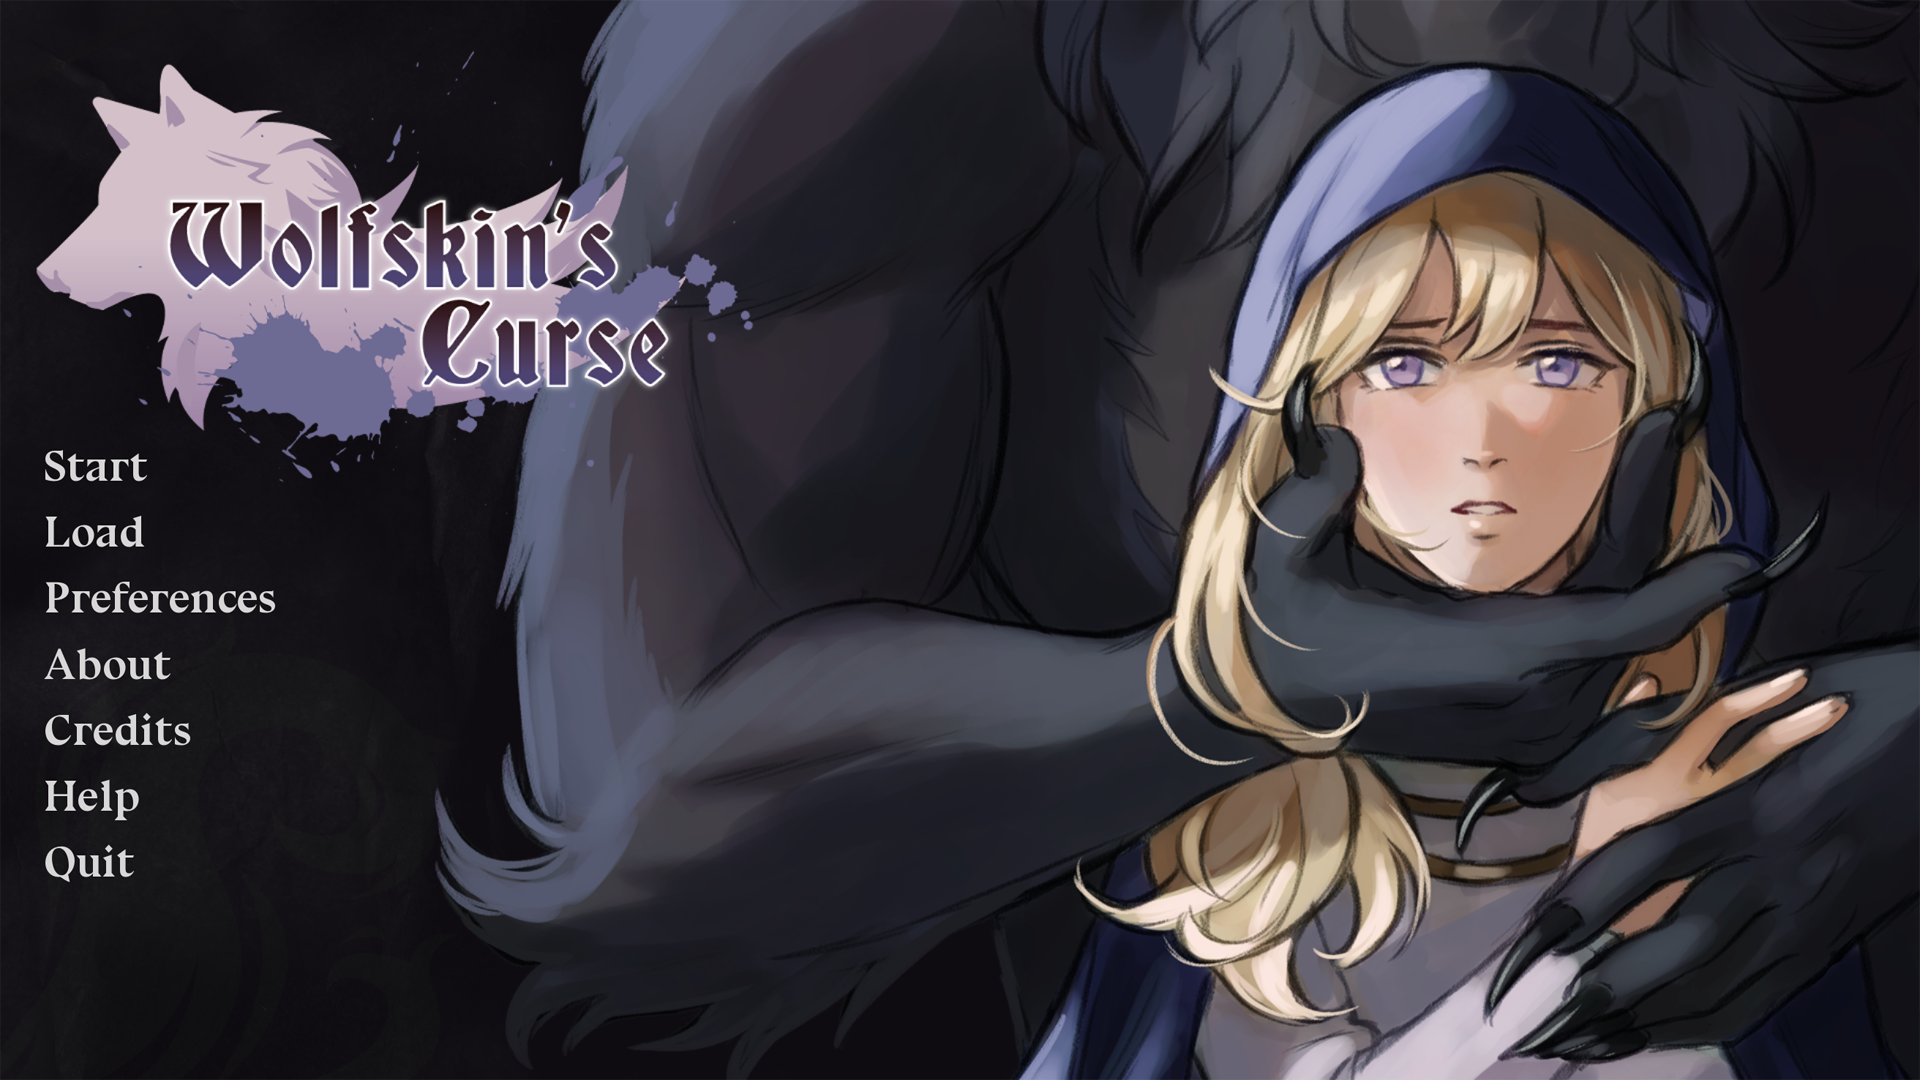 Claim Wolfskin's Curse for free